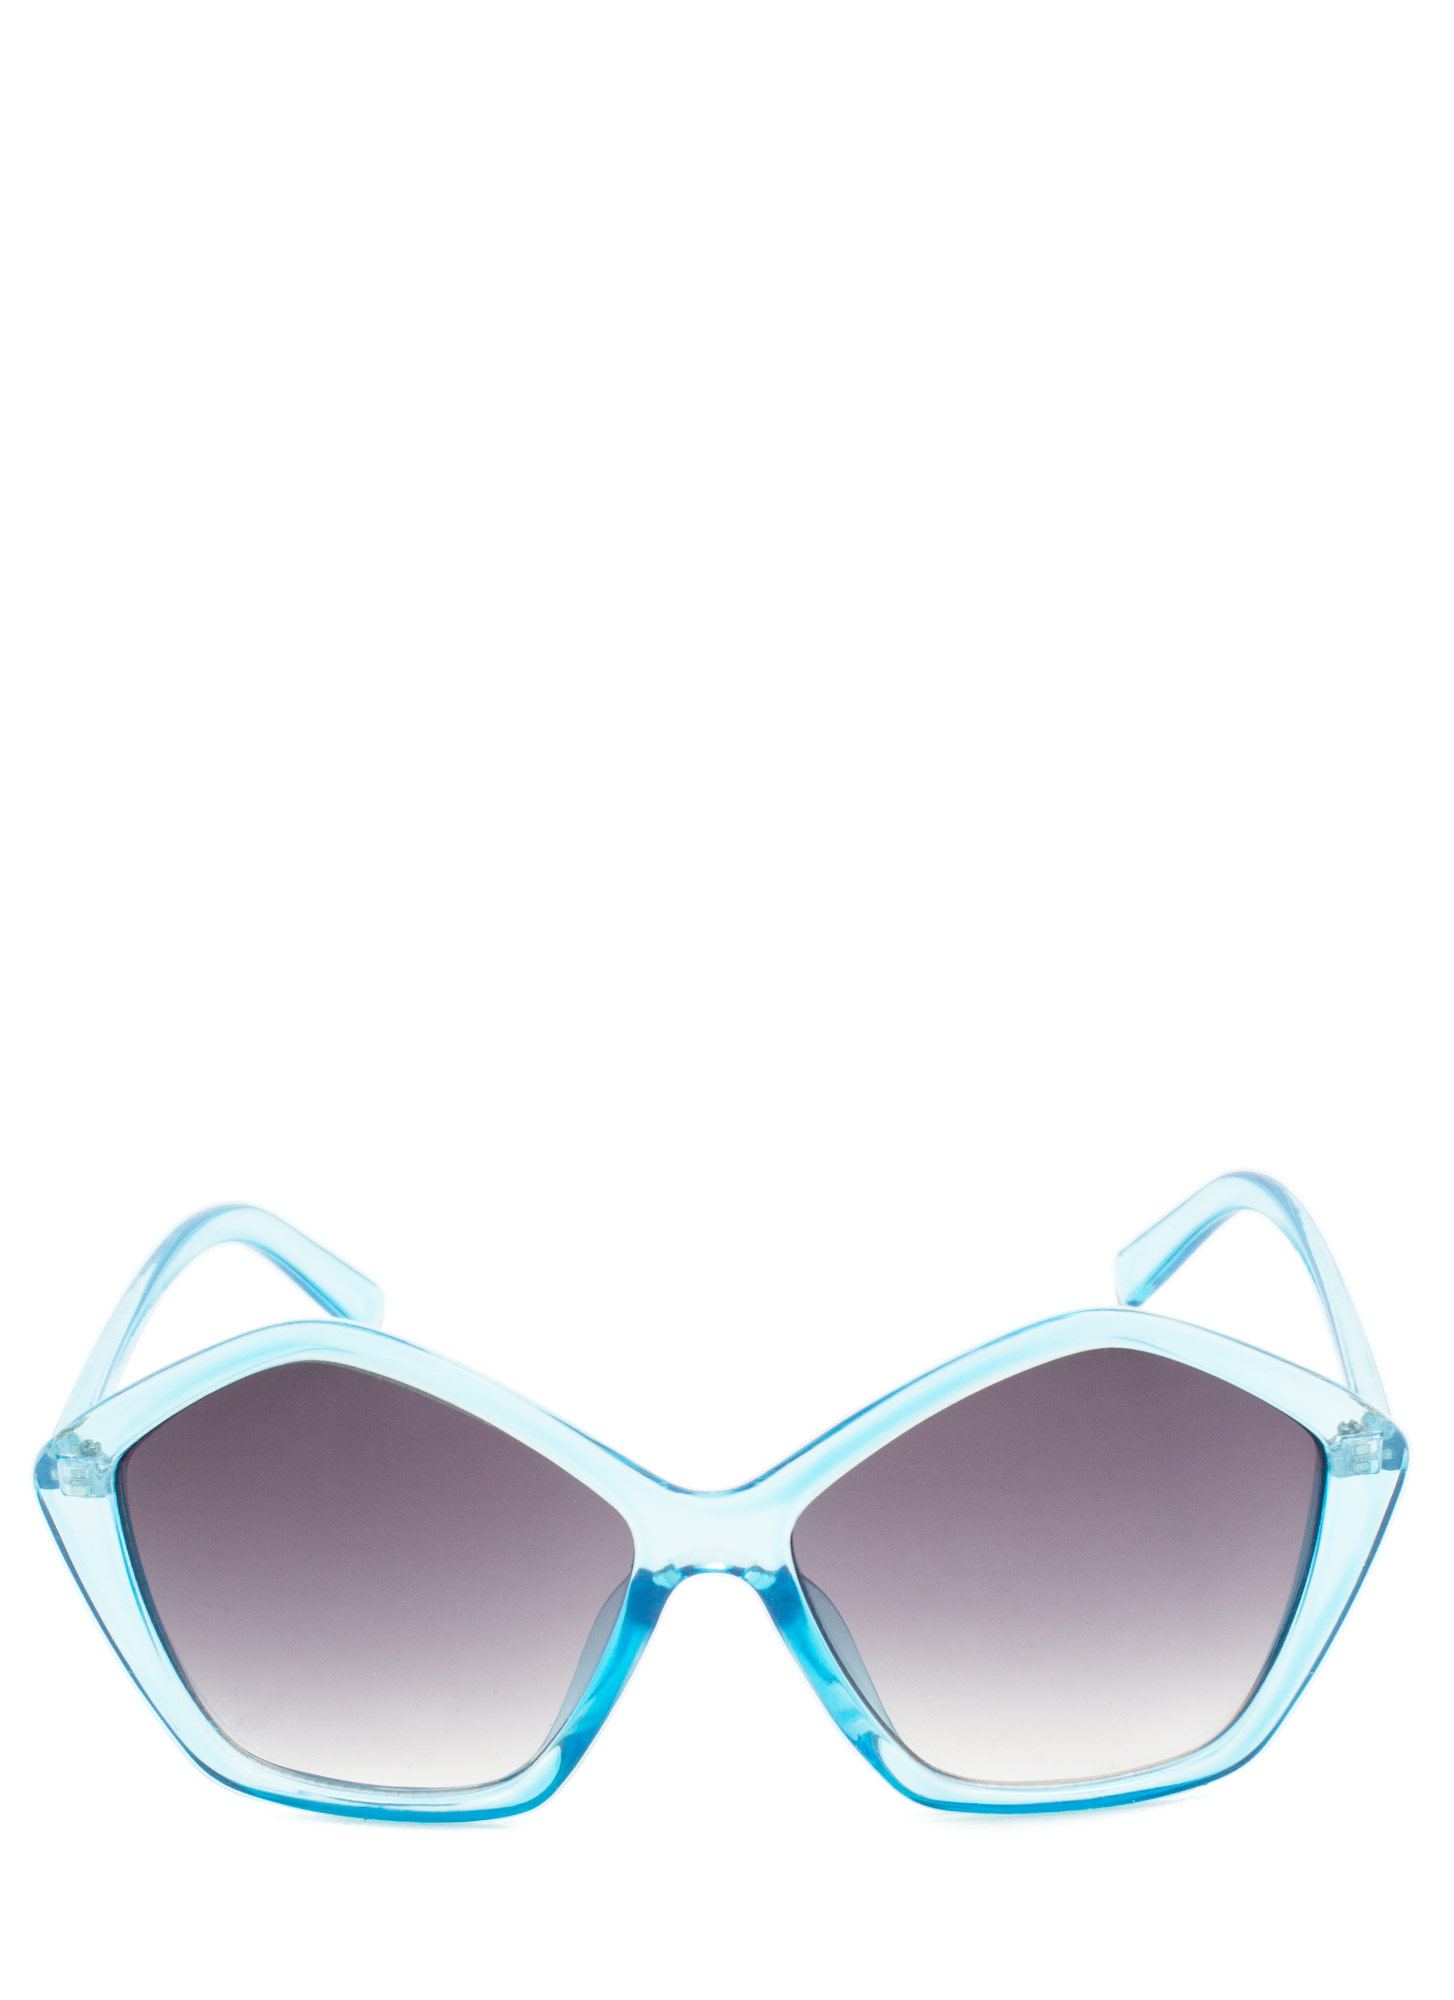 Pentagon Resin Sunglasses BLUE